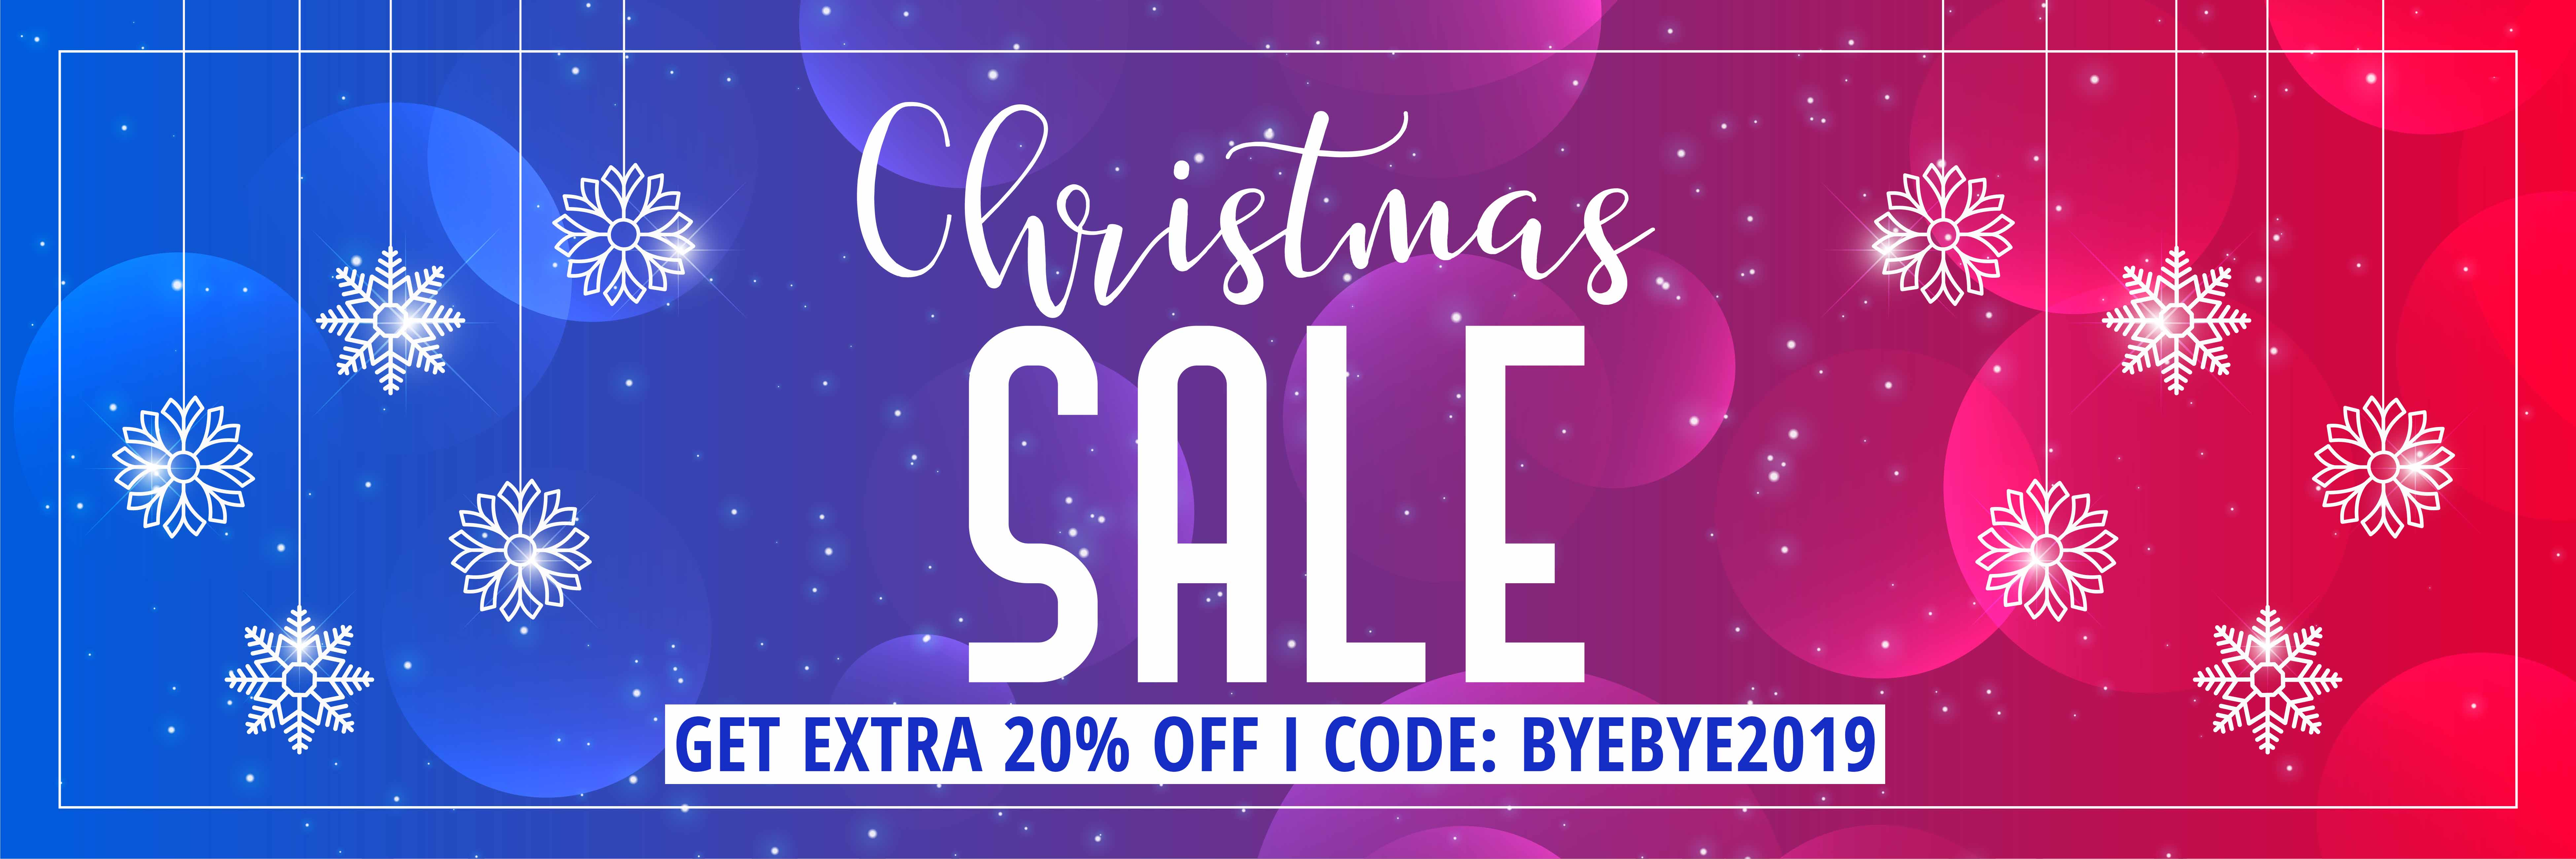 christmas-lingerie-sale-use-code-byebye2019-for-more-discount-mystrippercloset.com.jpg